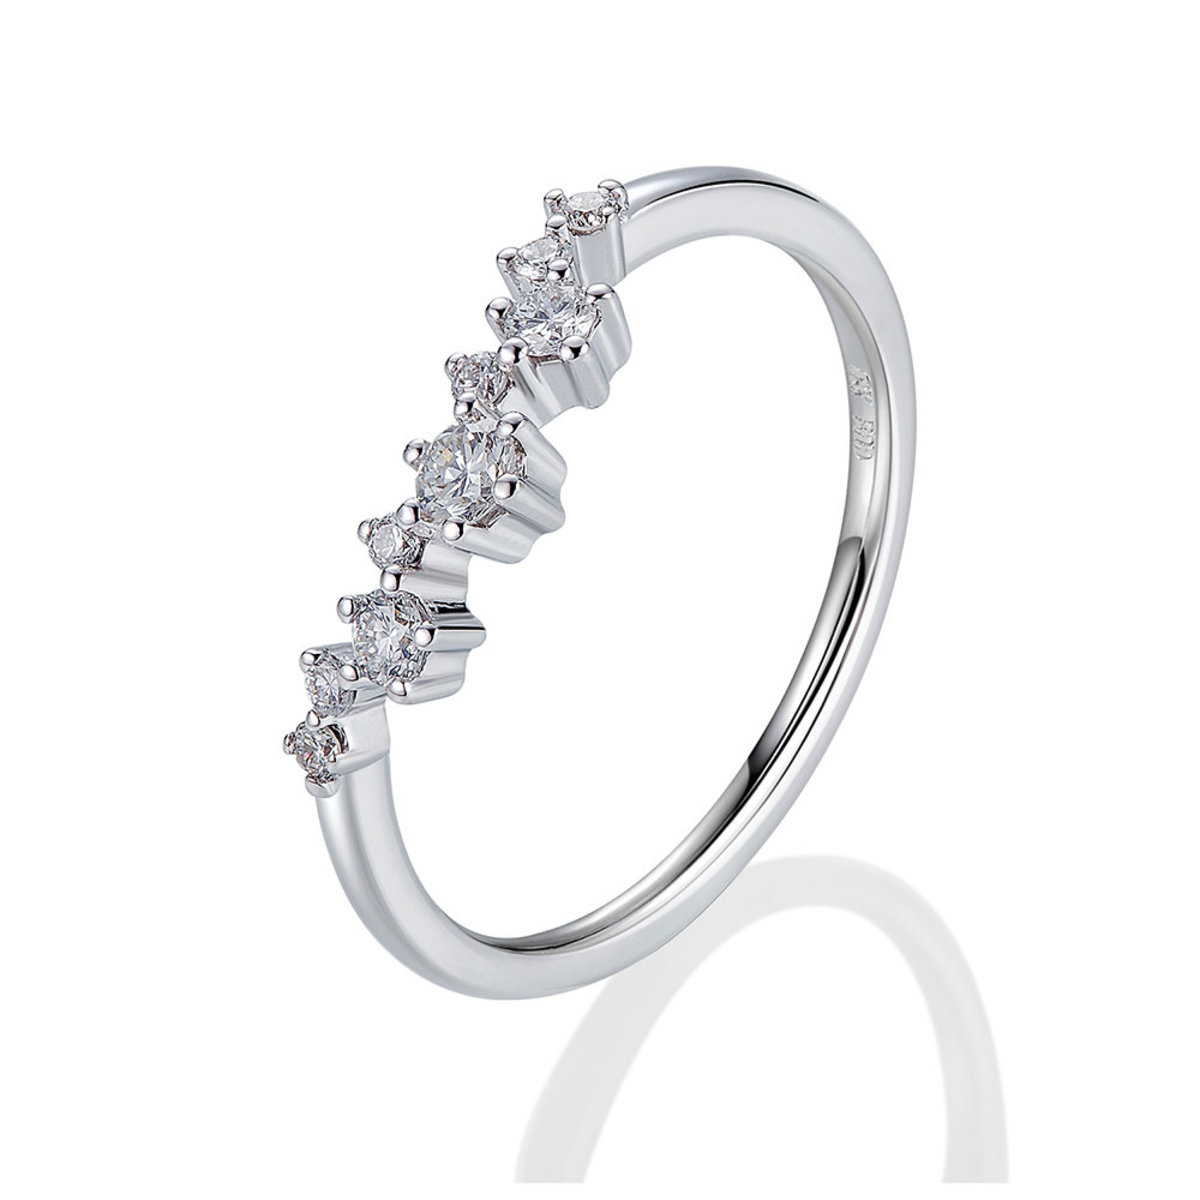 18K White Gold Diamond Ring (0.19 ct. tw.)